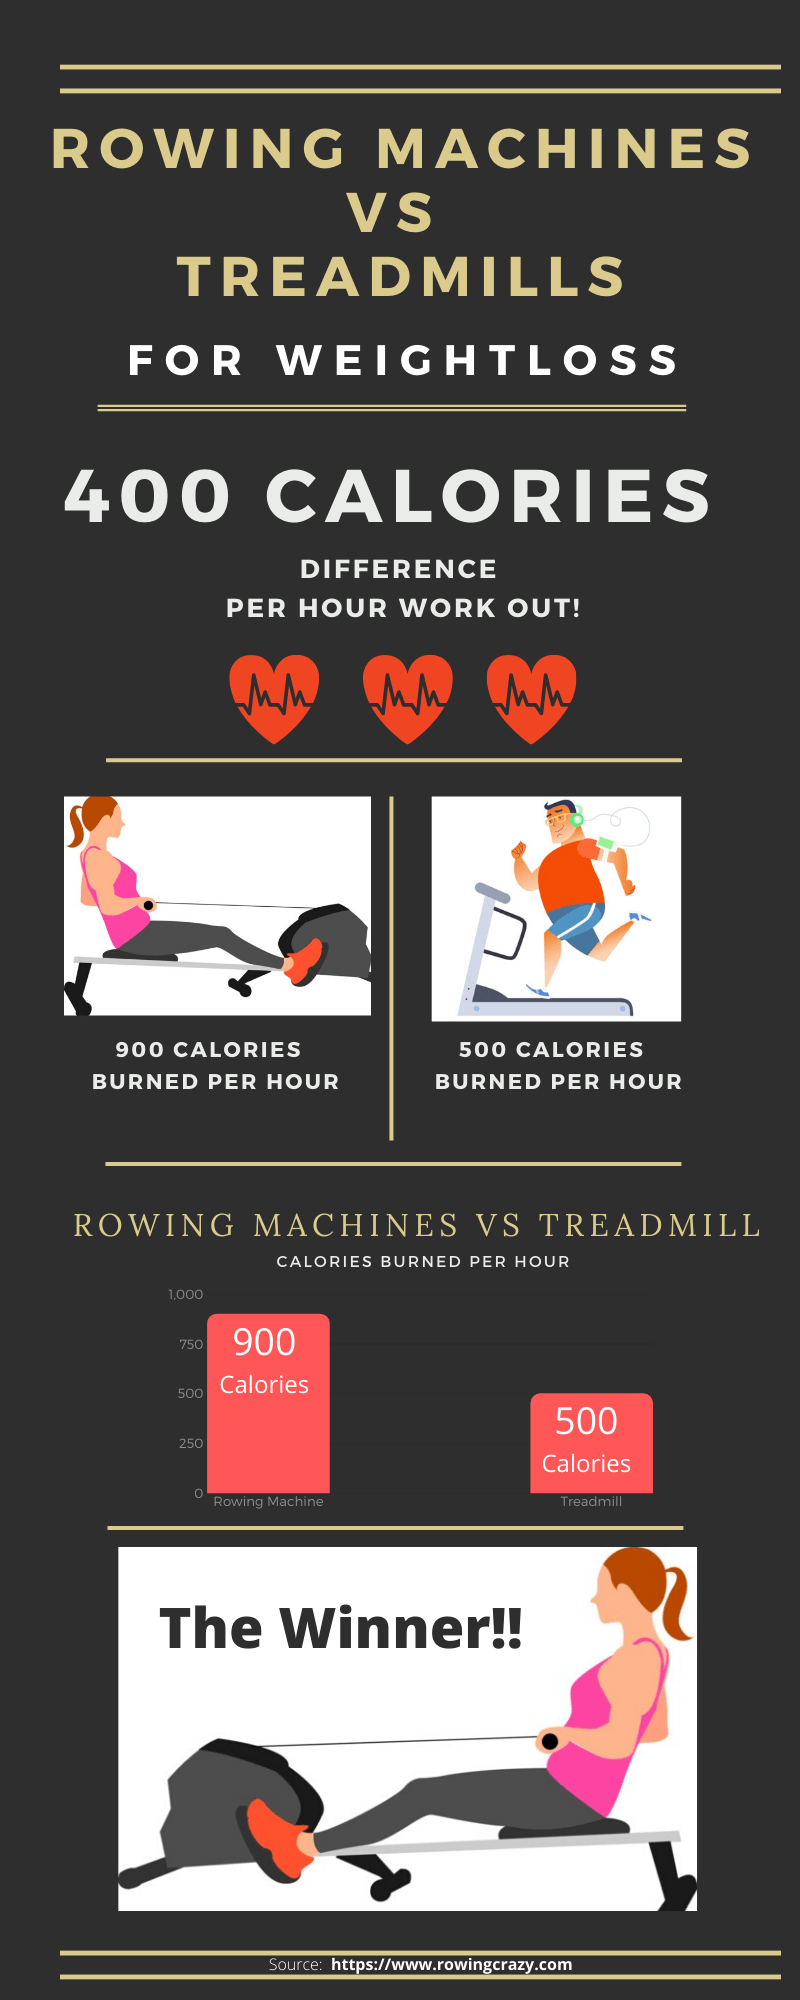 is a rower better than a treadmill